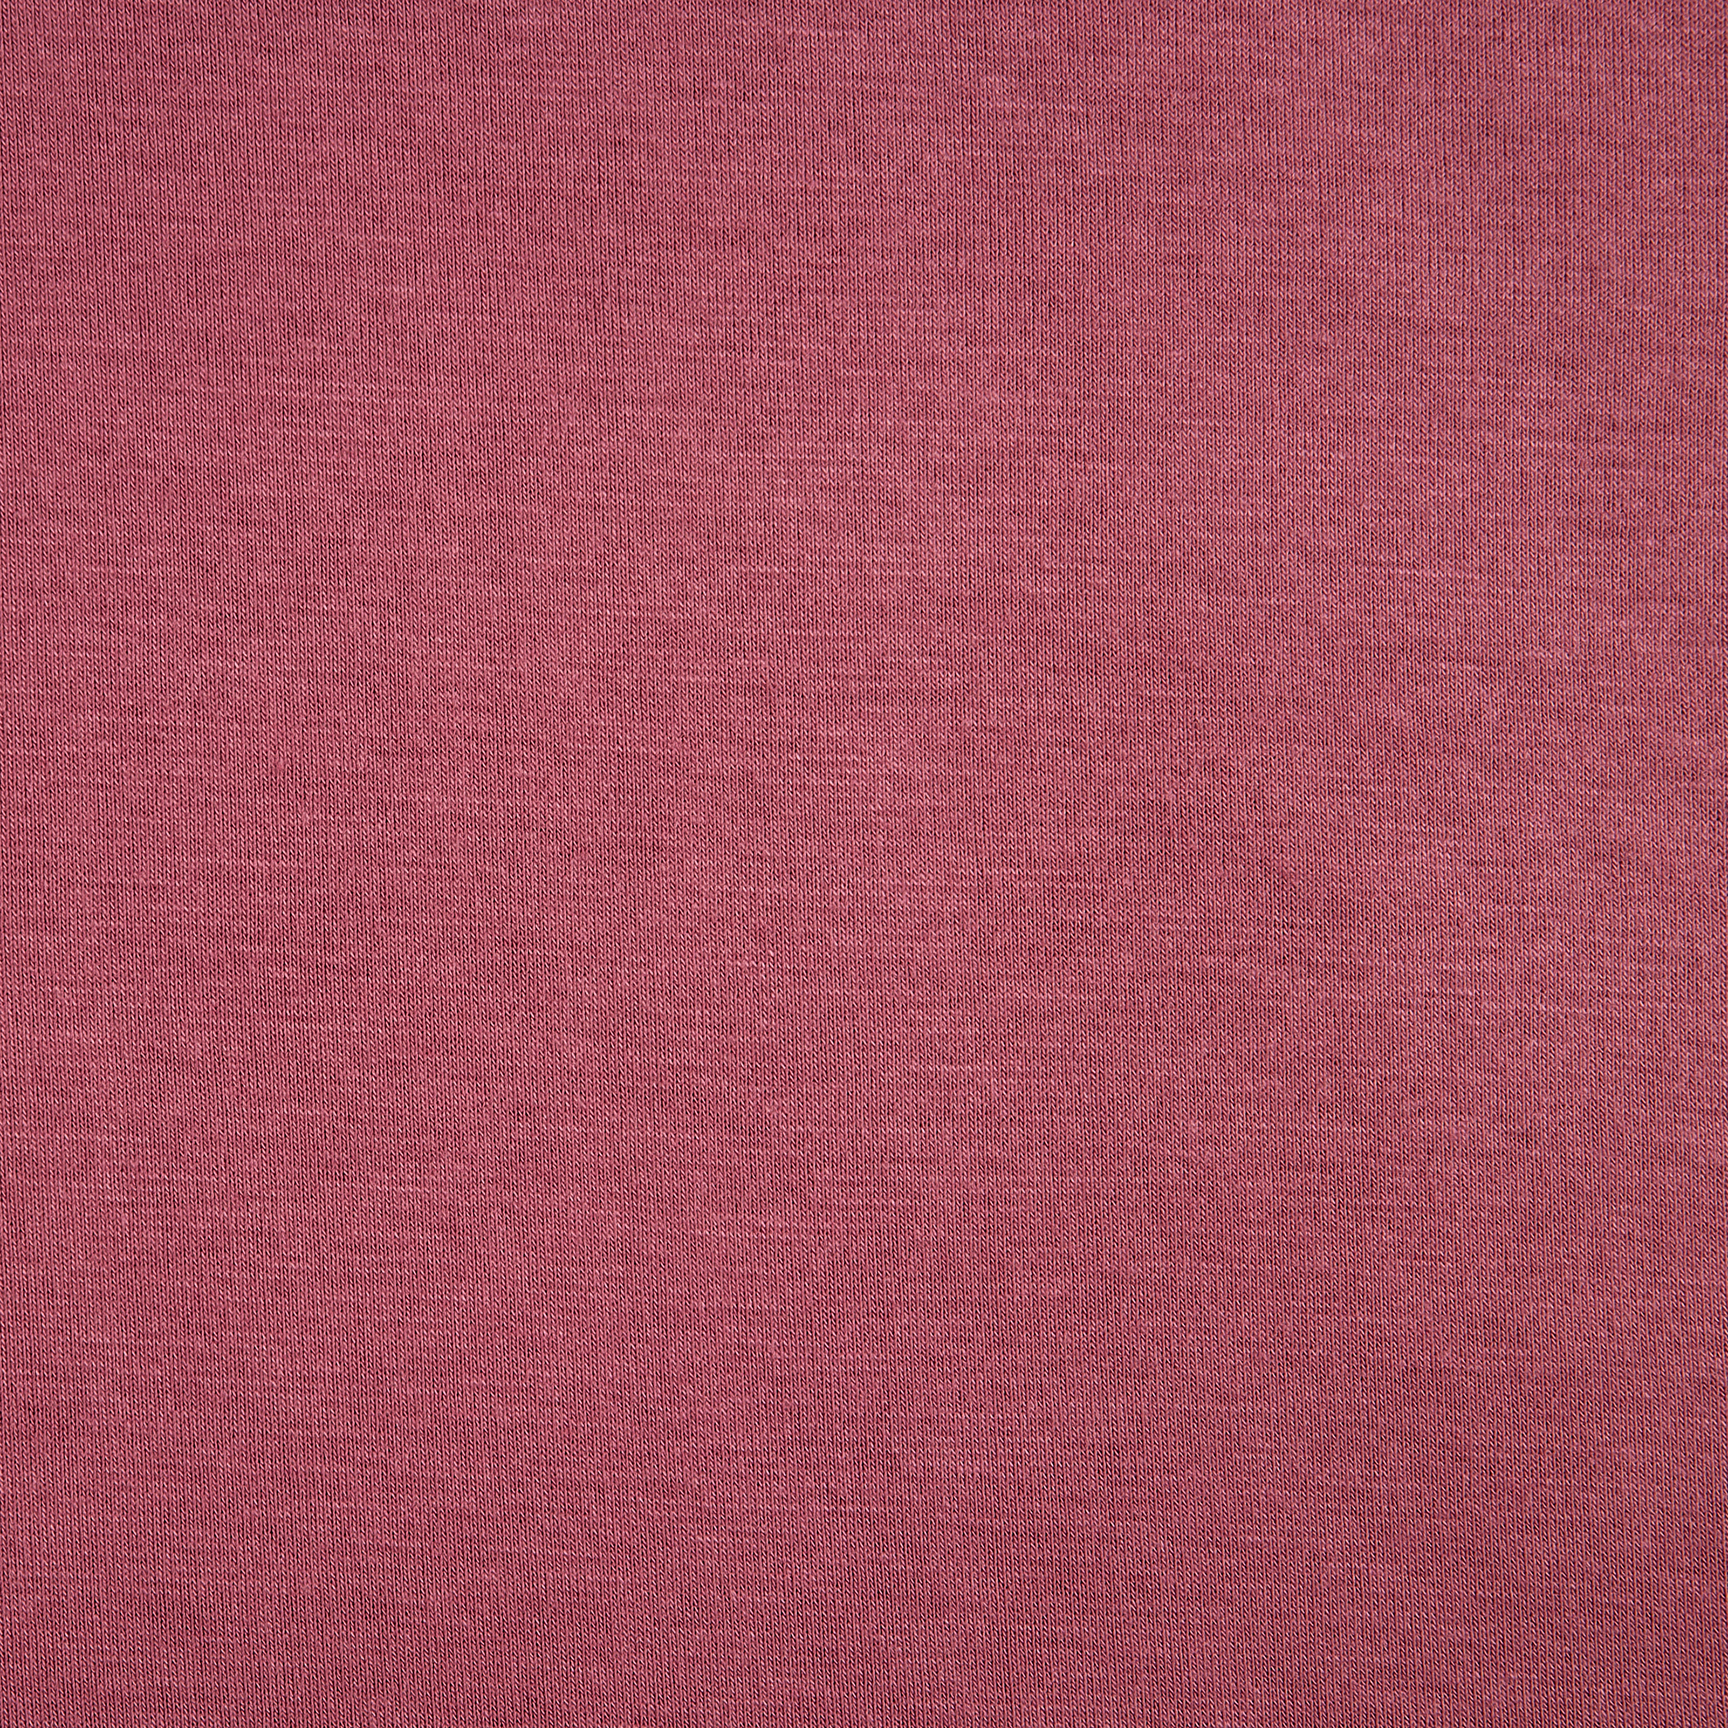 Rayon Spandex Jersey Knit Dusty Rose Fabric